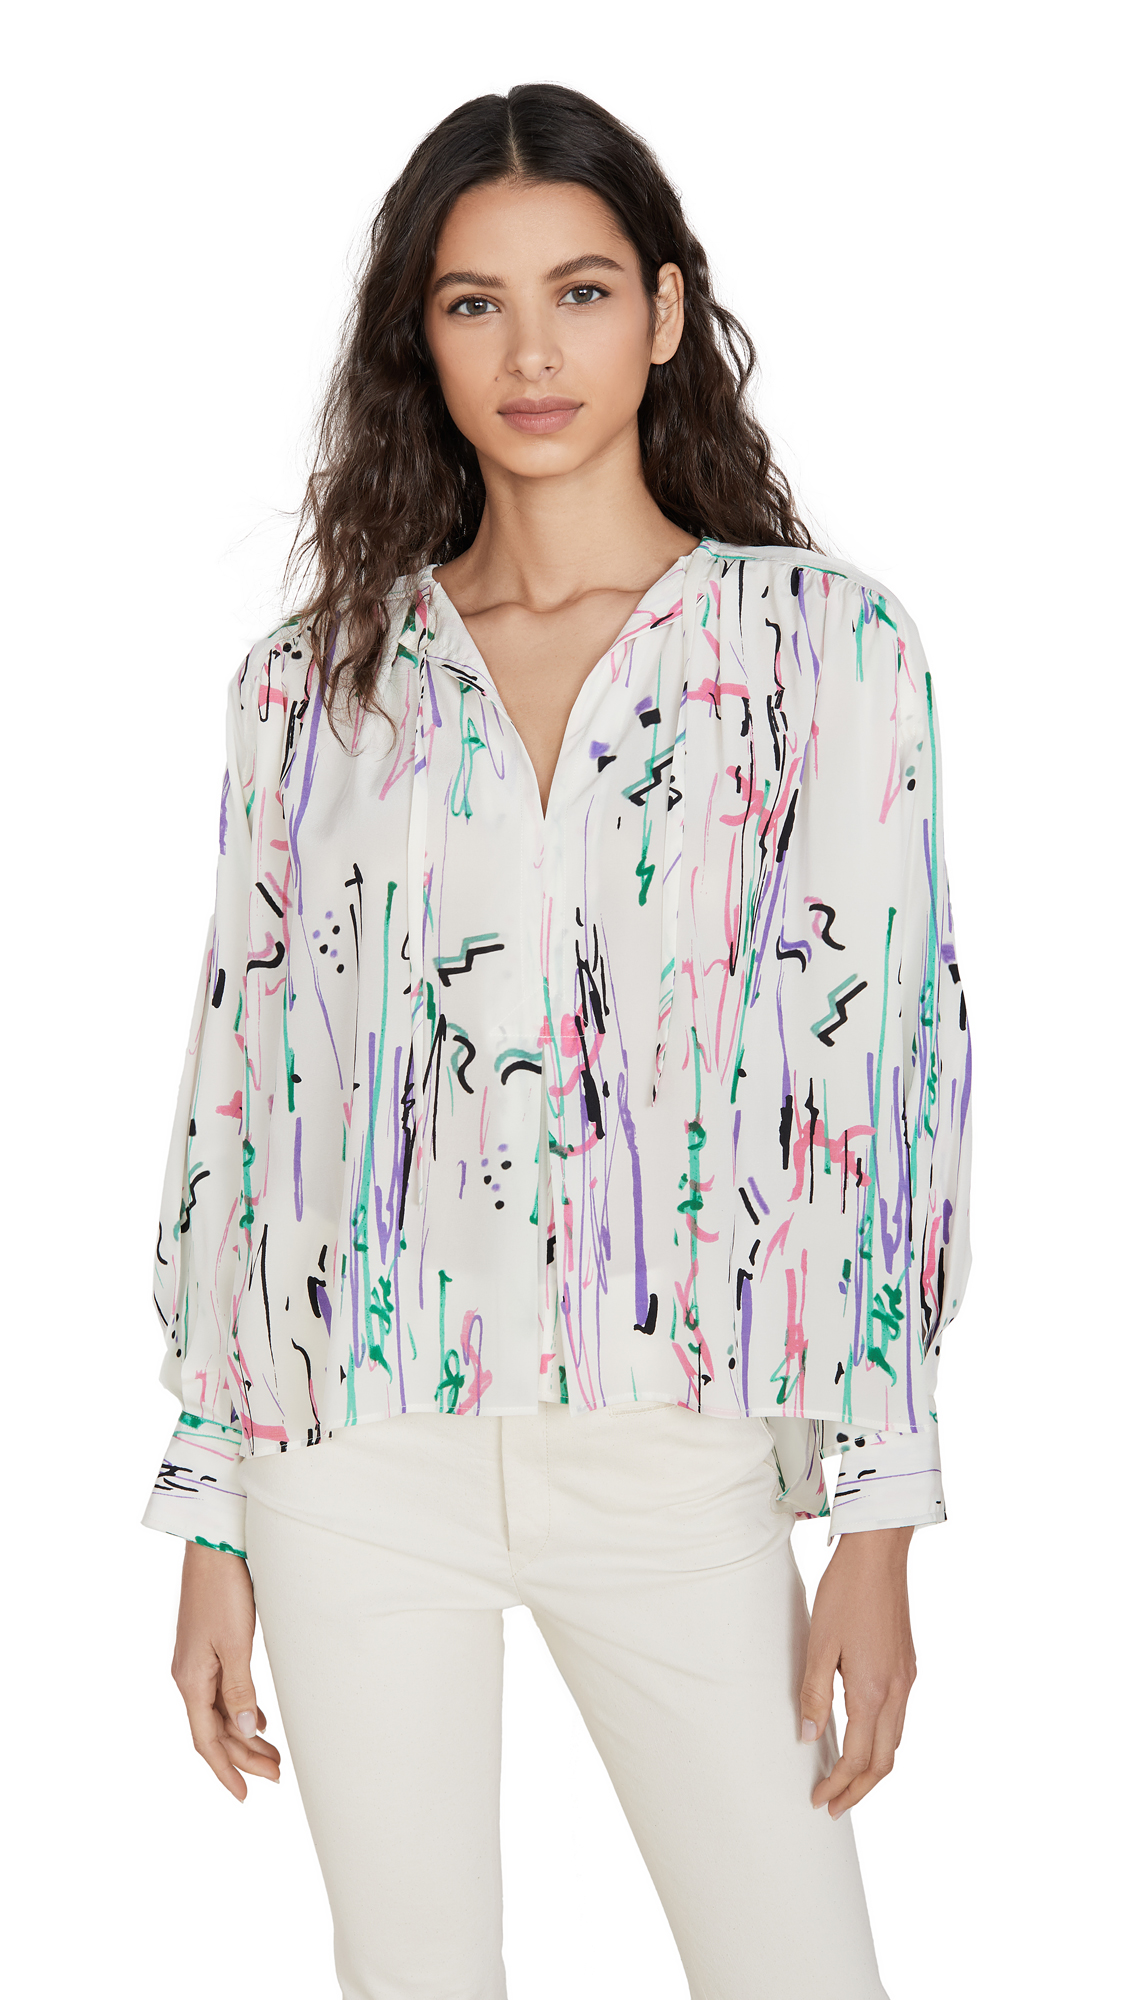 Isabel Marant Amba Blouse - 50% Off Sale